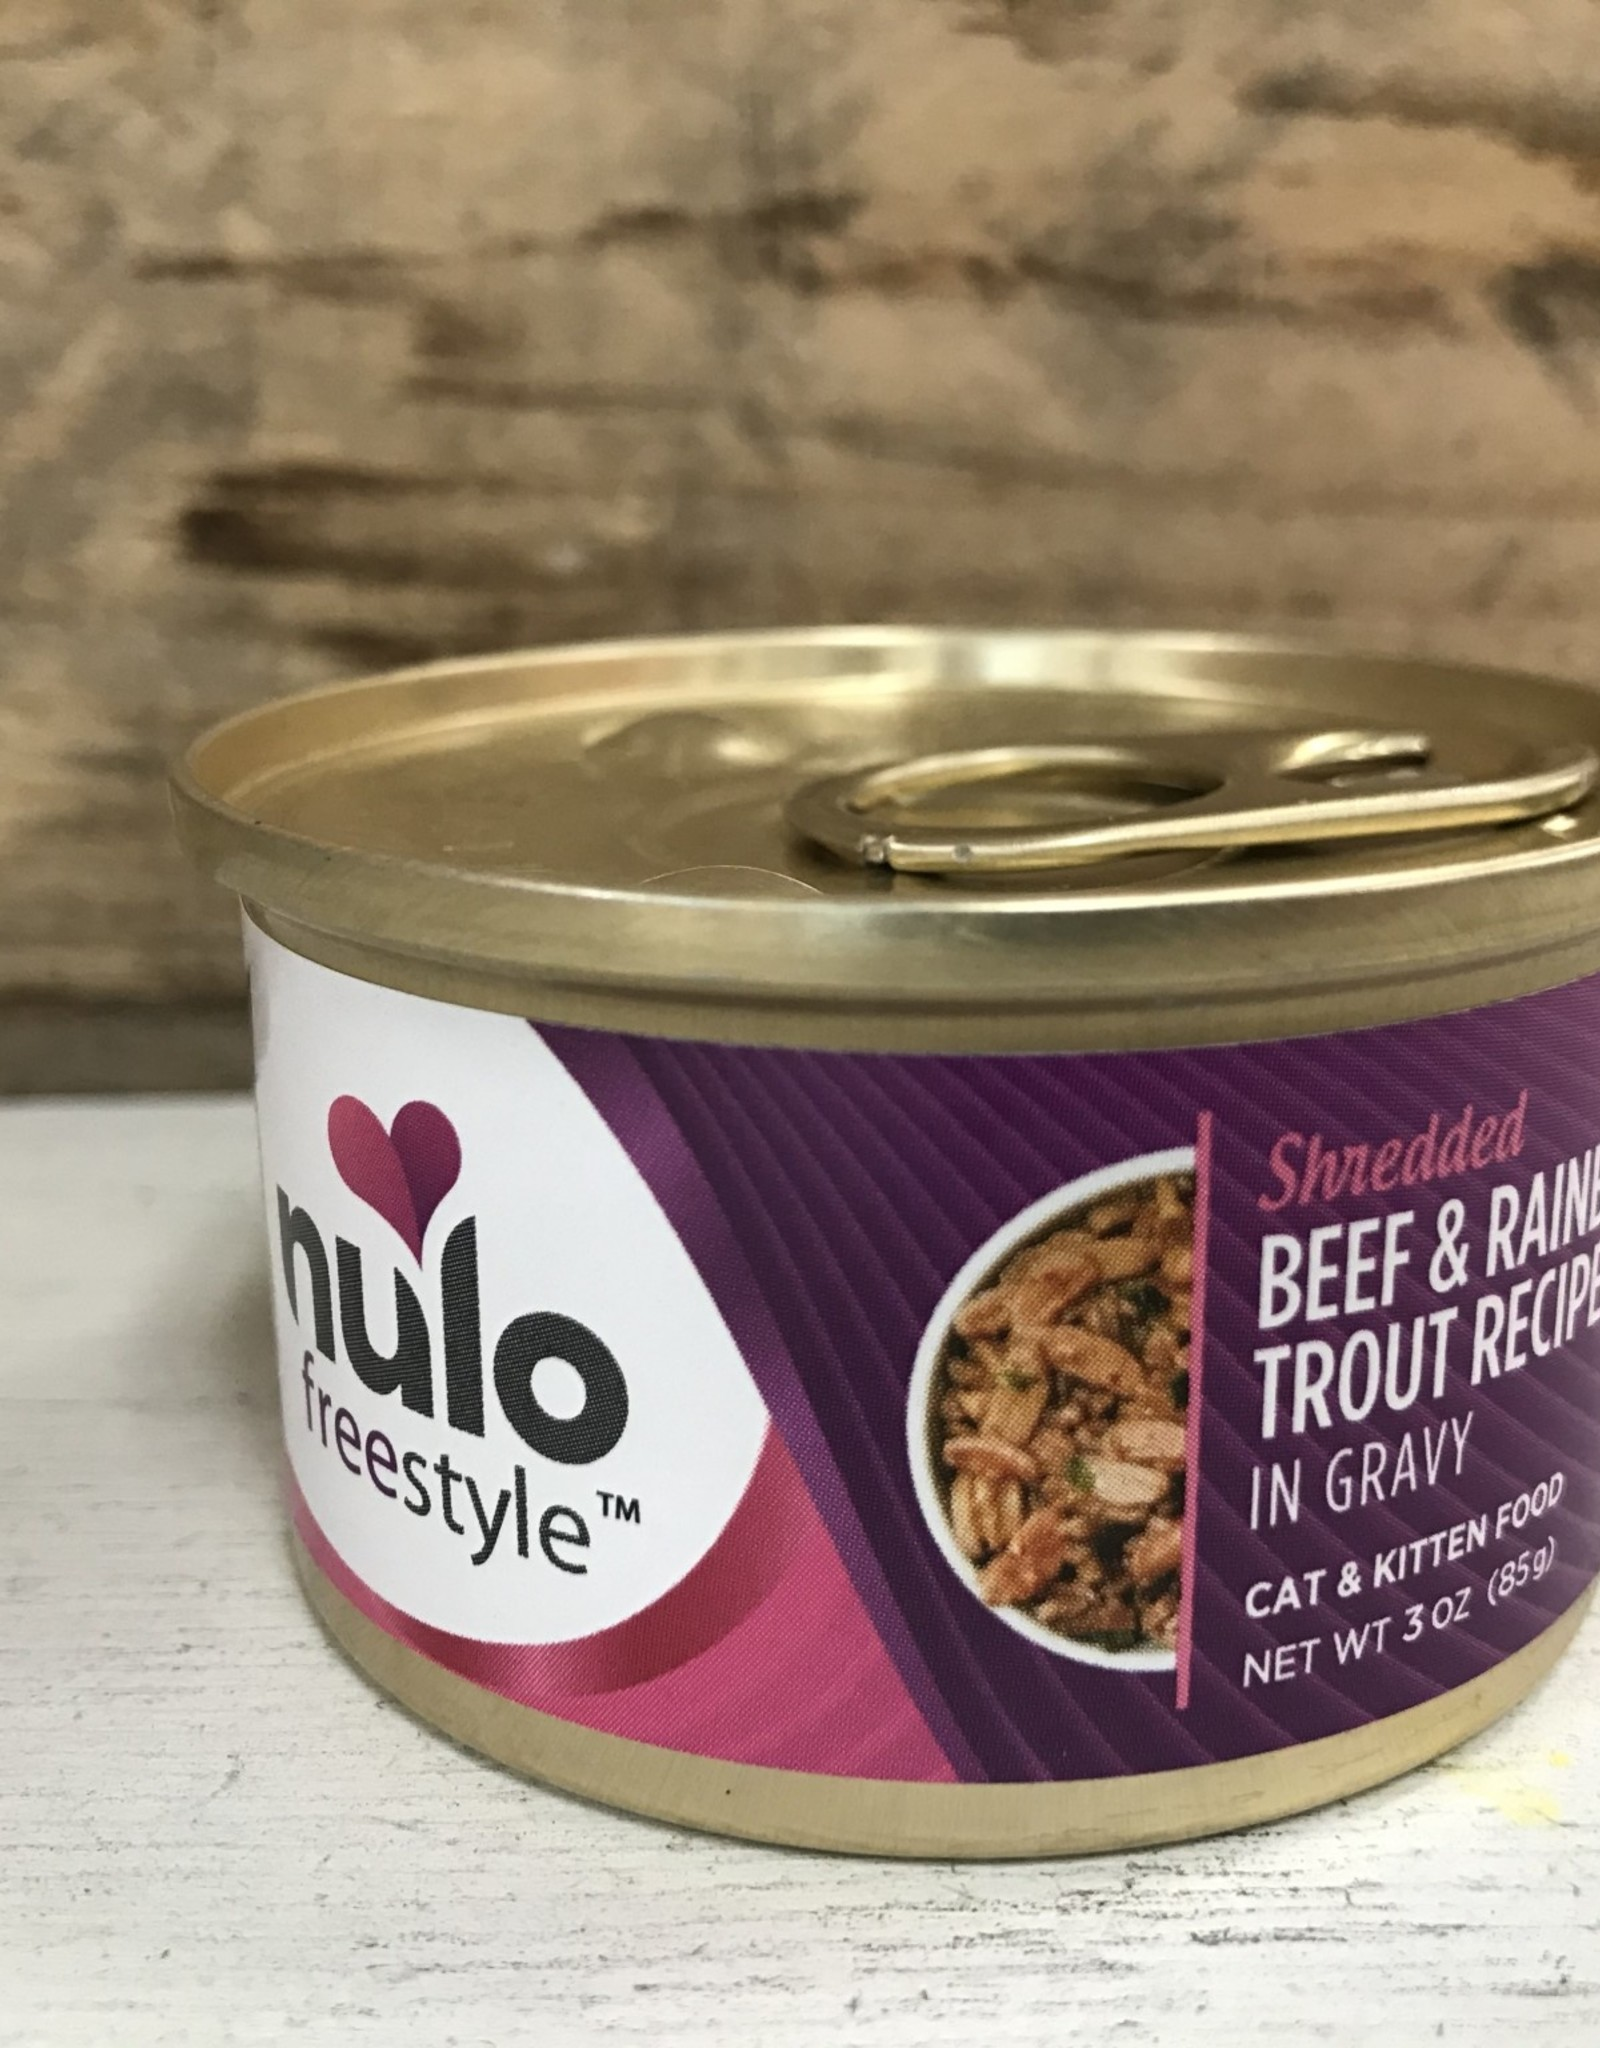 Nulo Nulo FreeStyle 3oz GF Cat Shredded Beef & Rainbow Trout in Gravy can